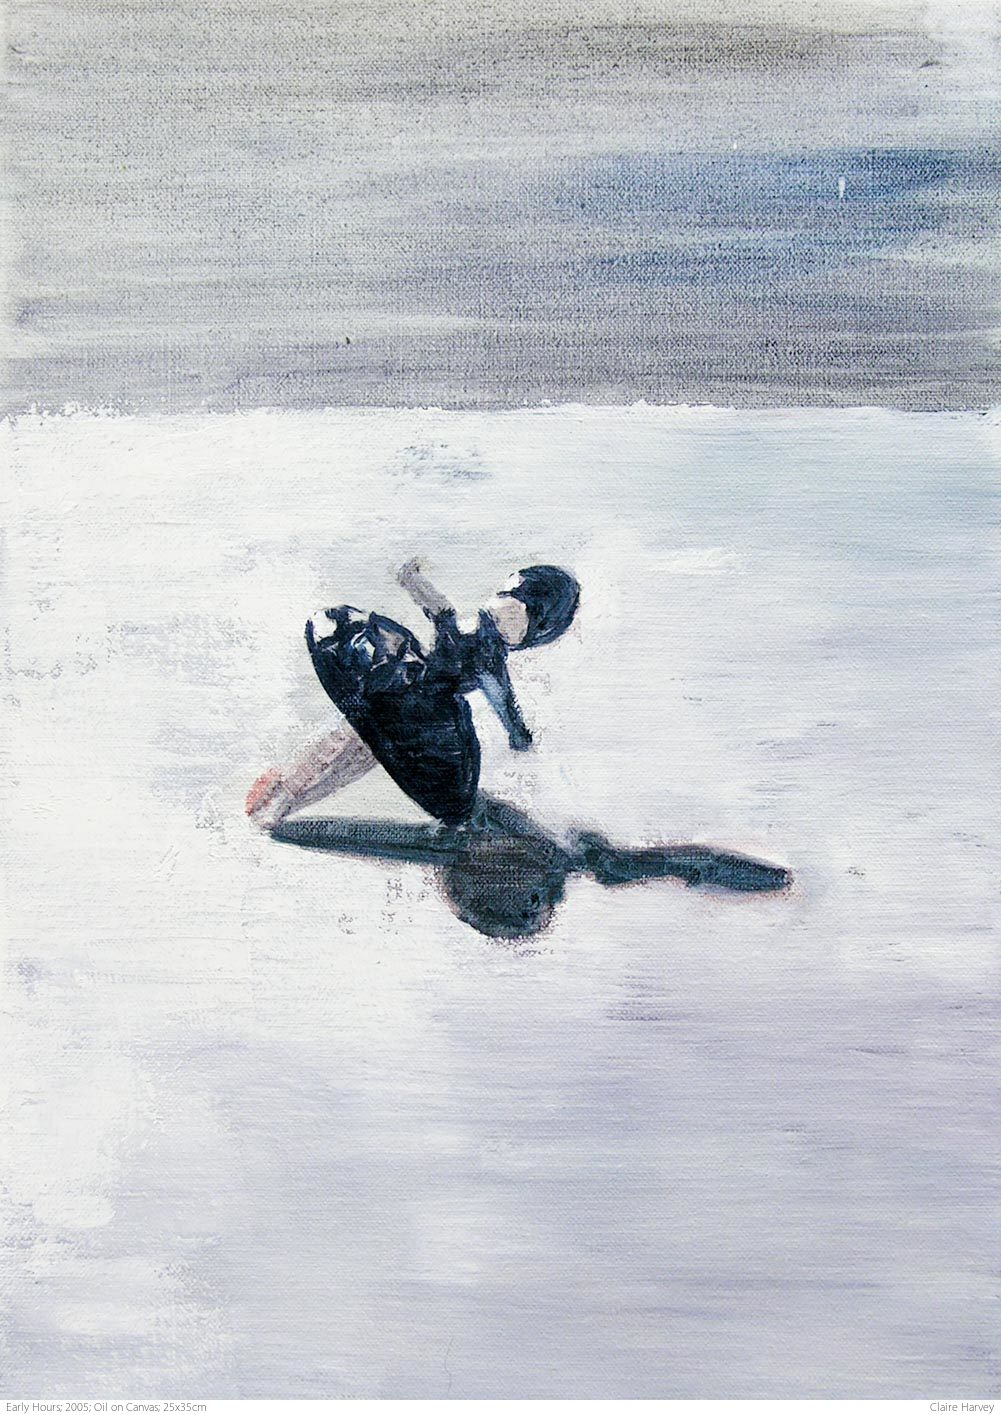 Early Hours; 2005; Oil on Canvas; 25x35cm